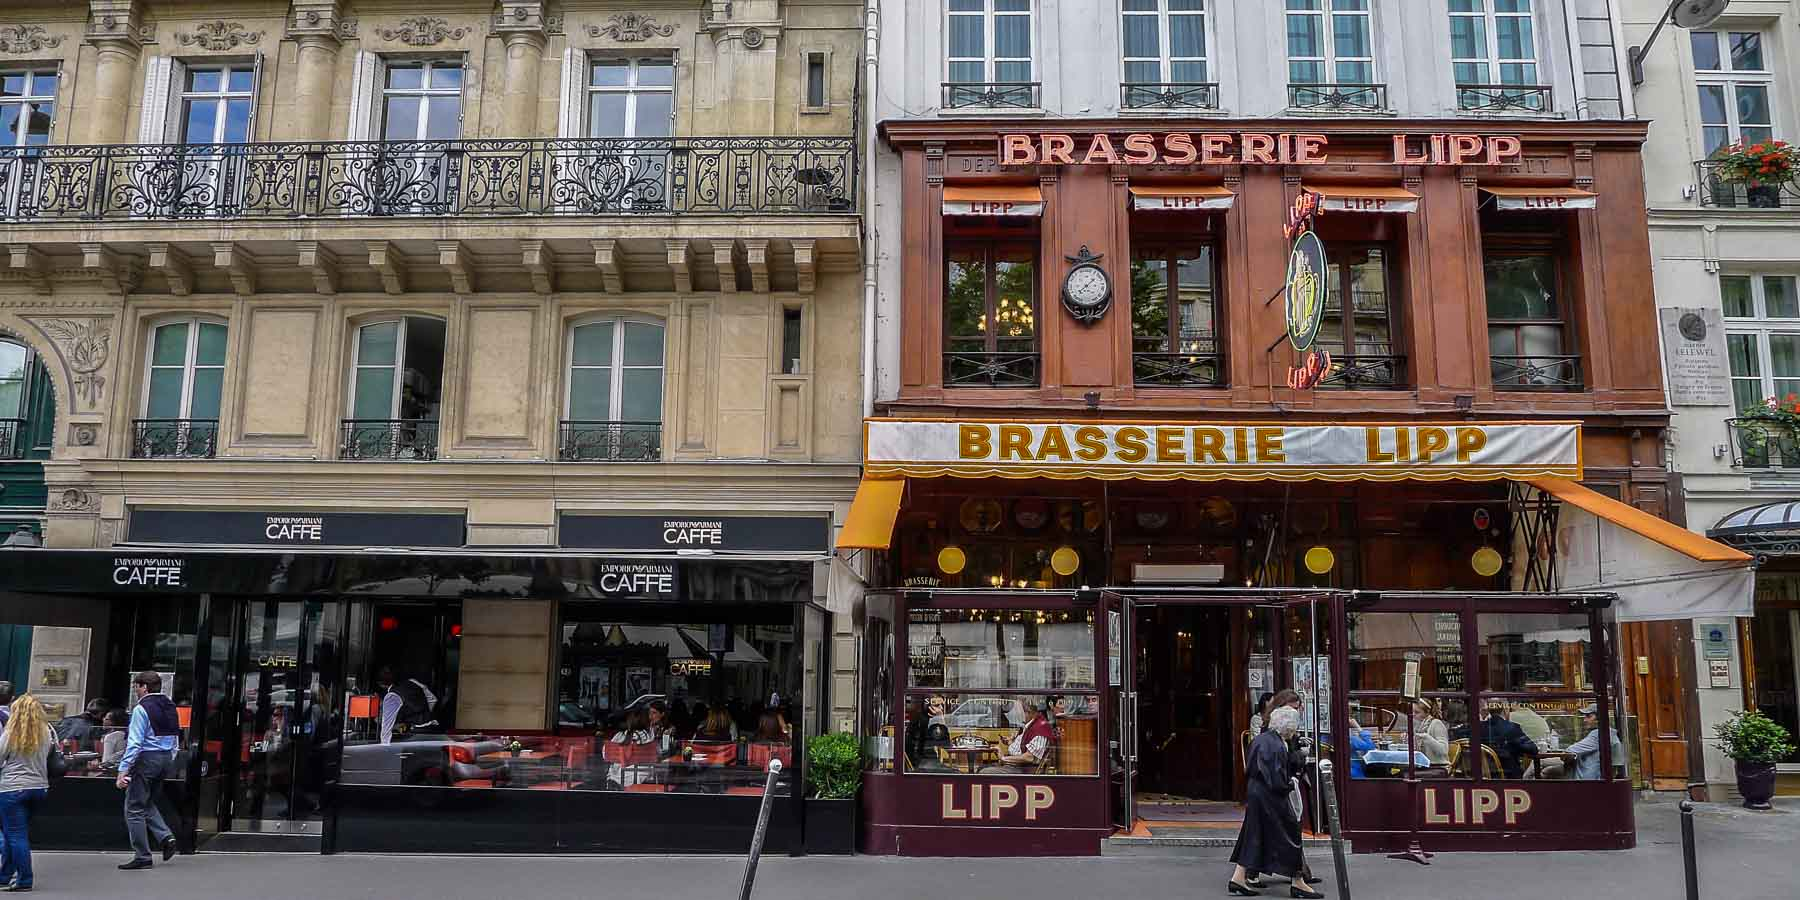 One of the best liked of Paris arrondissements is the 6th, home to Brasserie Lipp